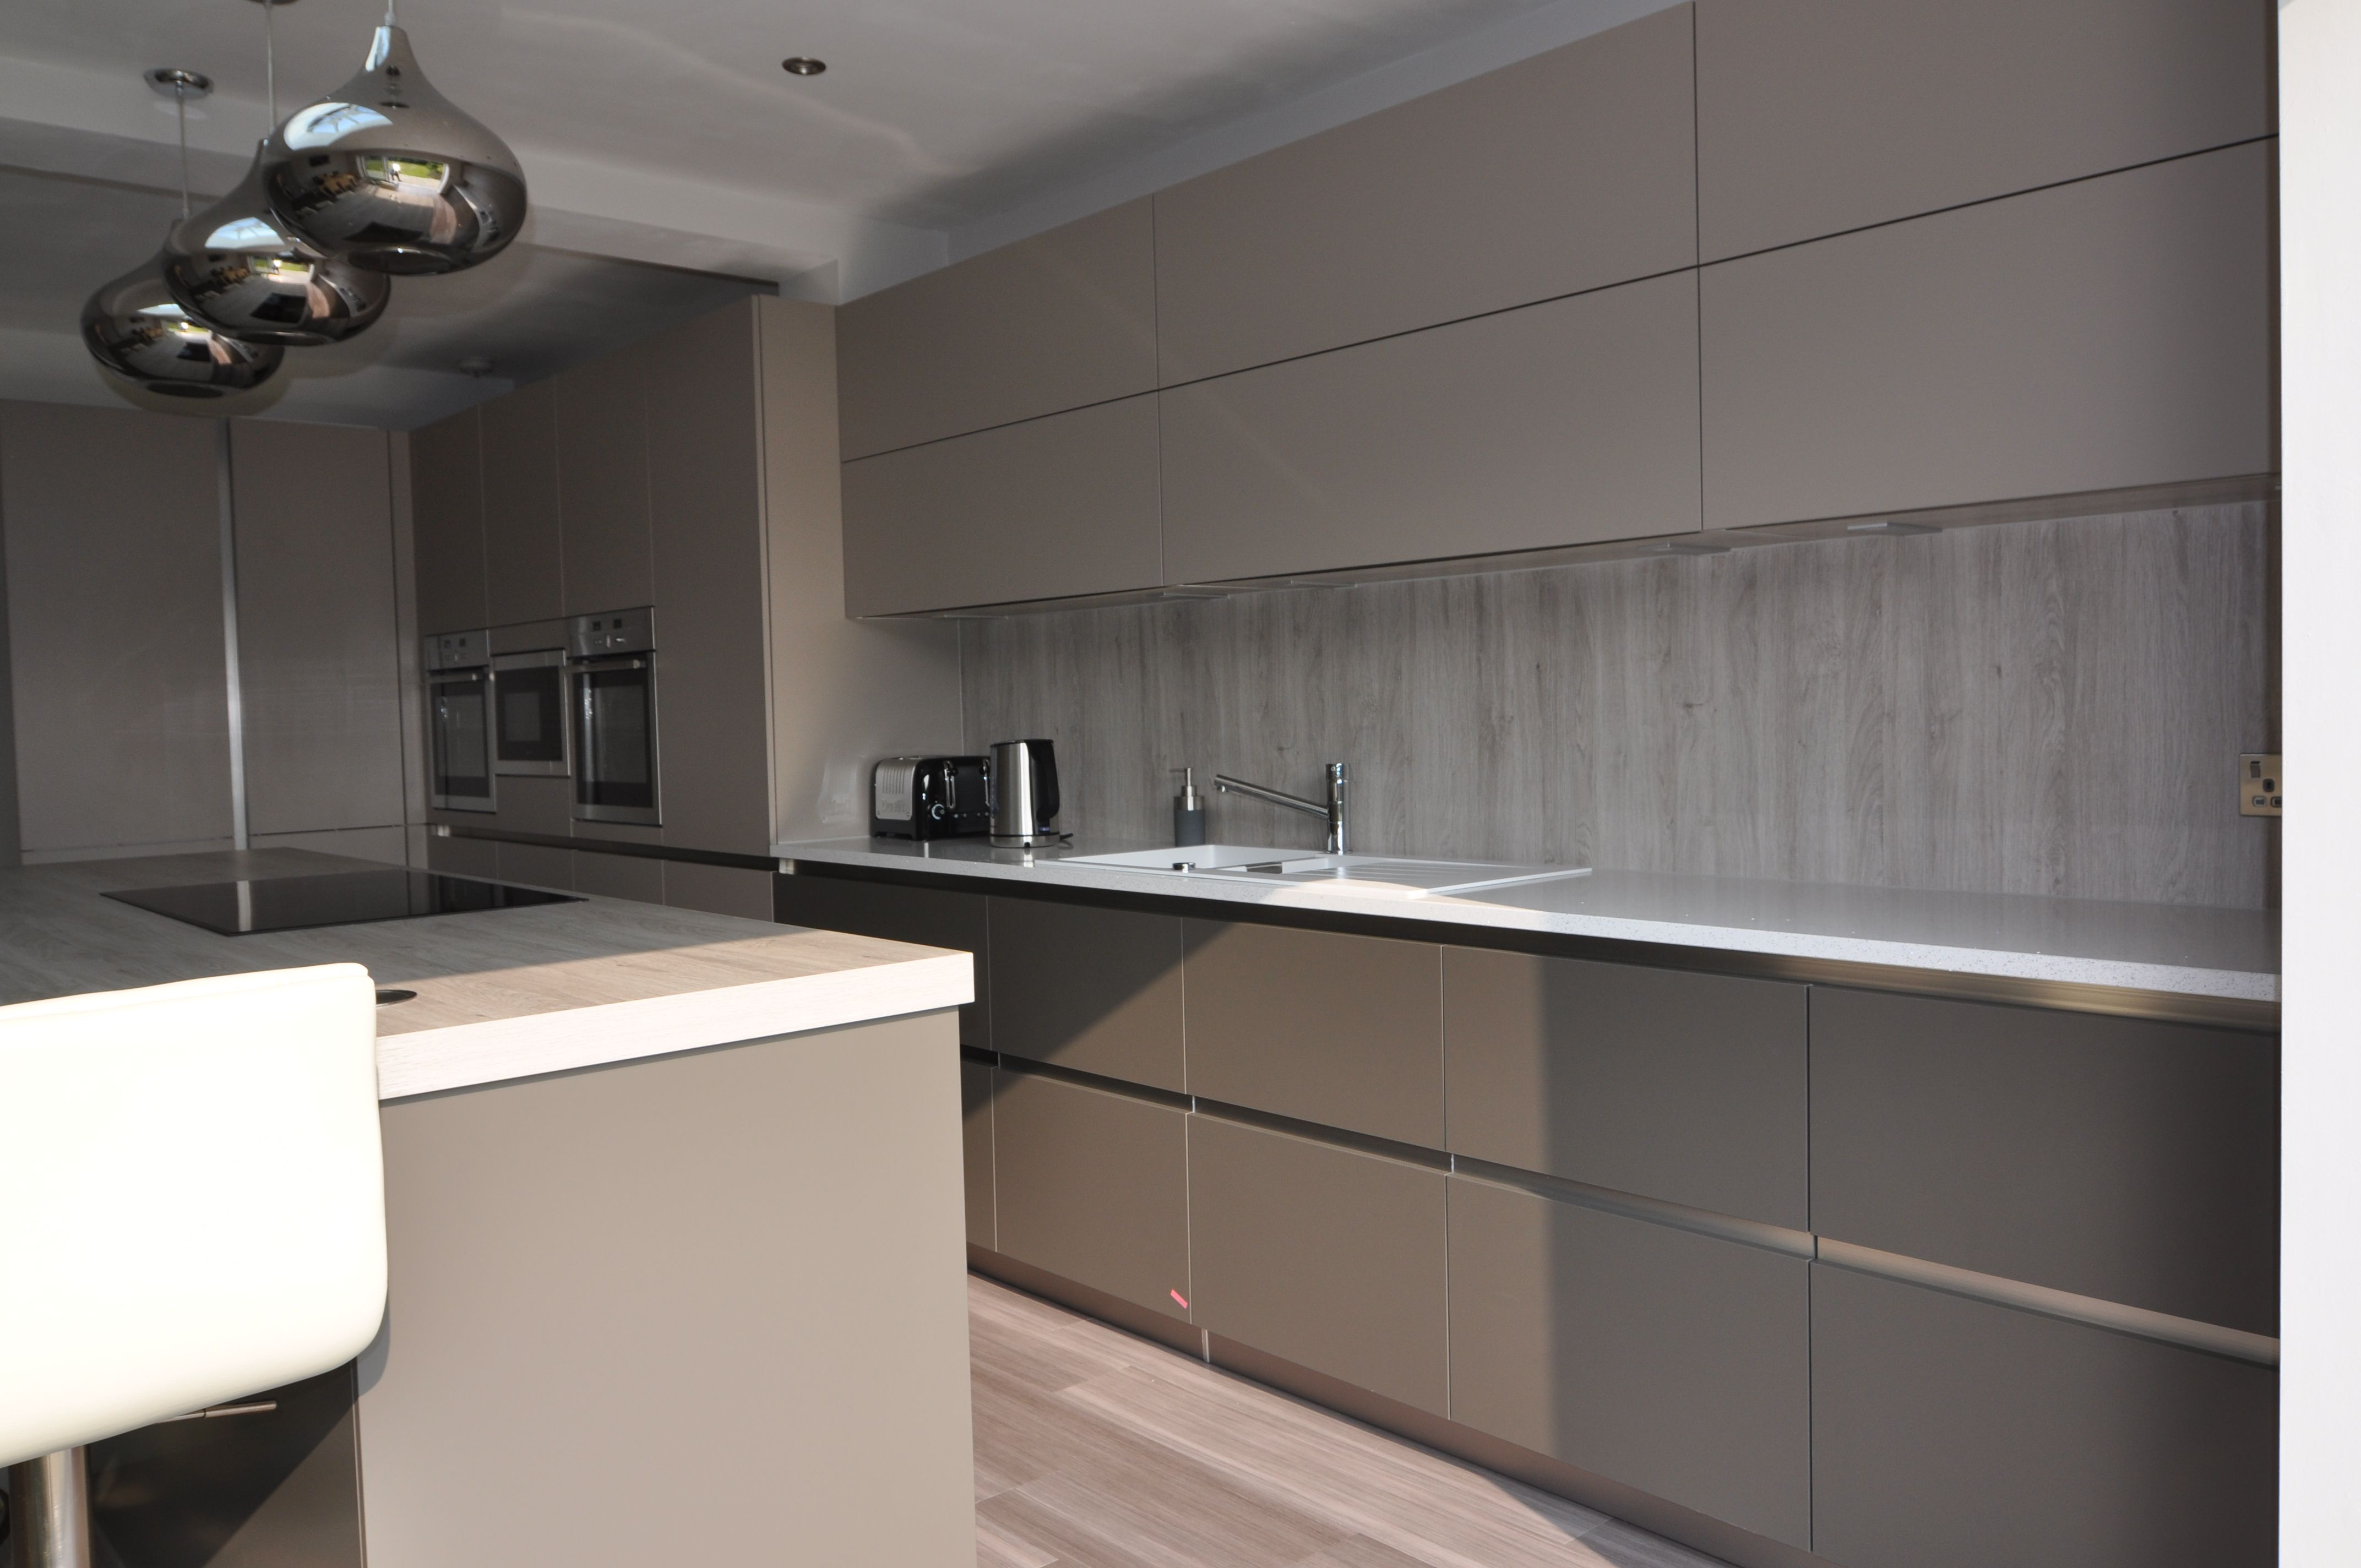 Need A New Kitchen Look No Further We Offer Complete Service From Design